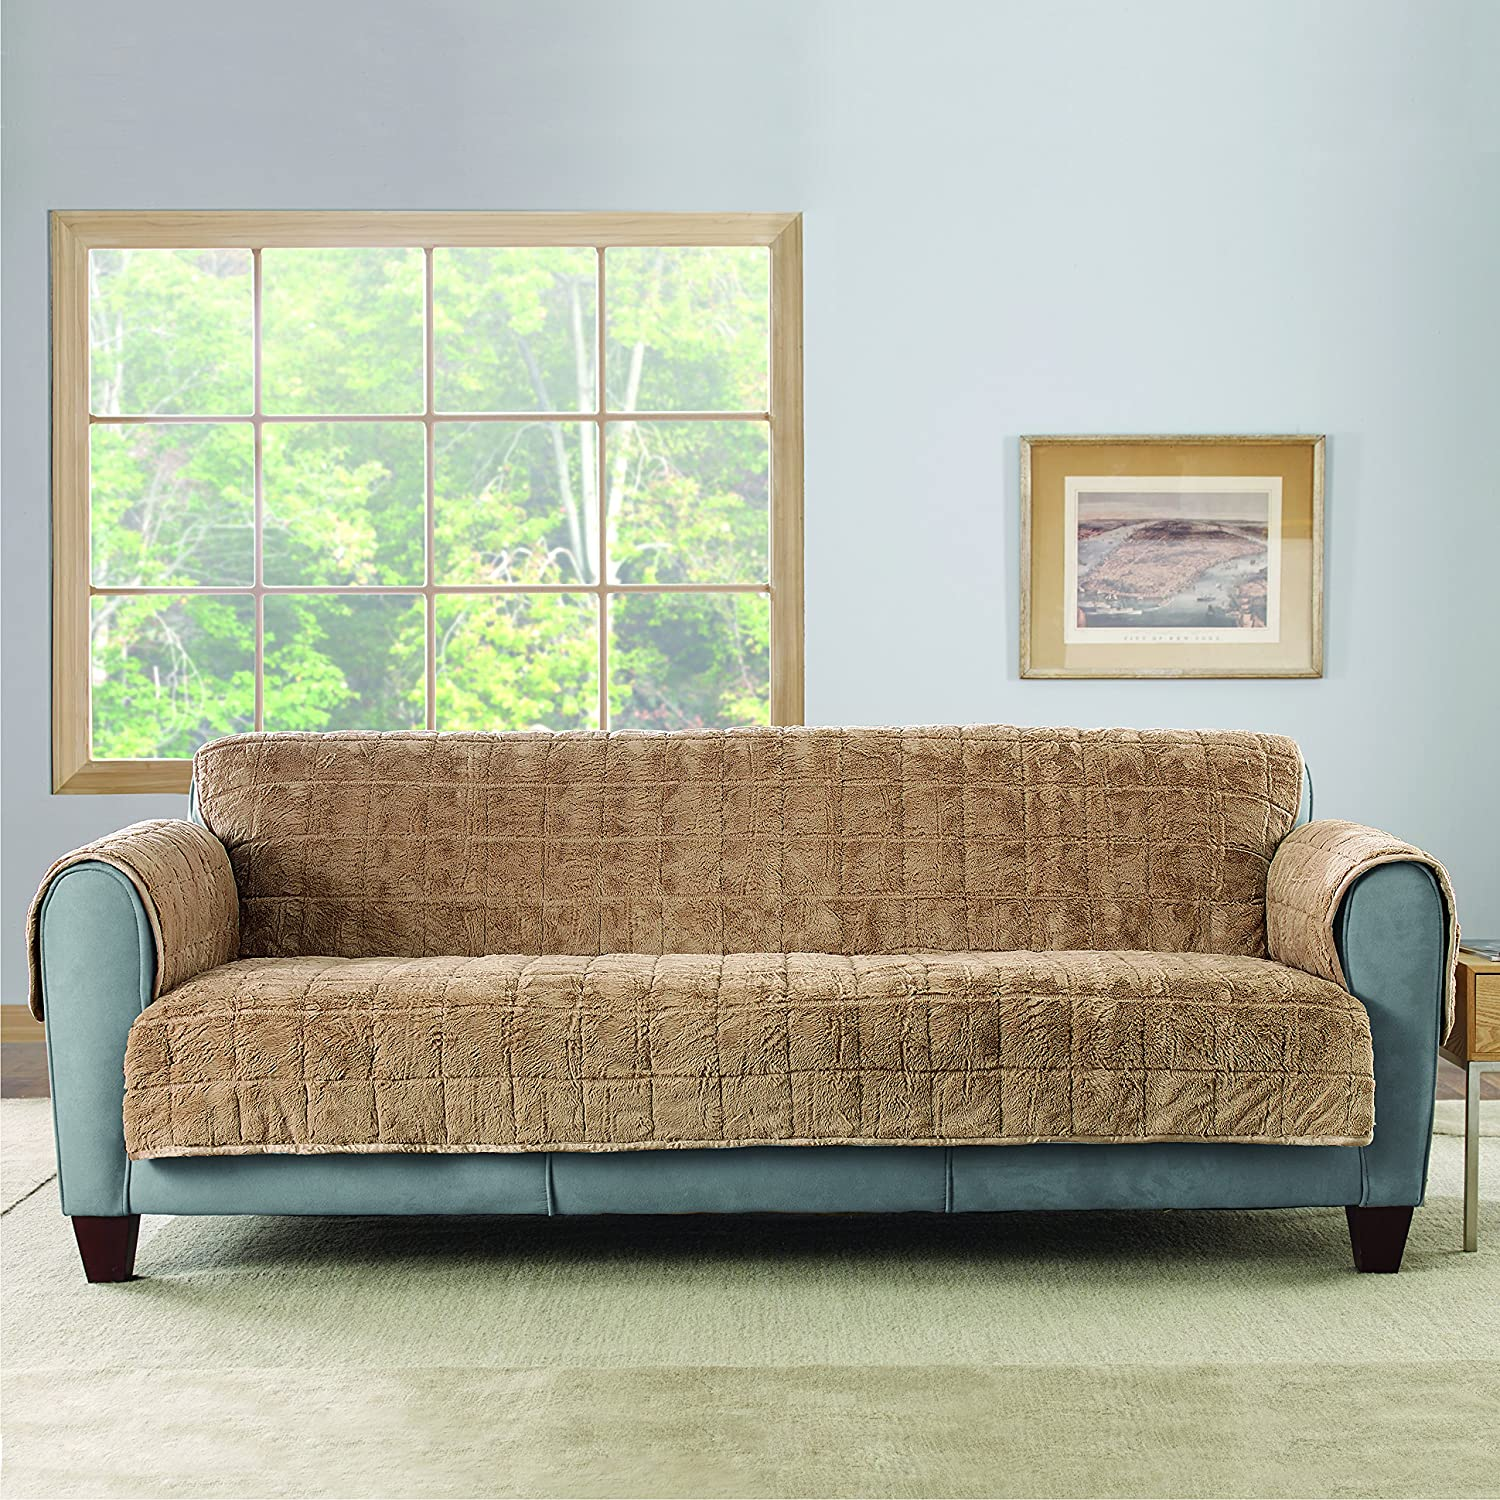 Amazon Sure Fit Faux Fur Throw Quilted Sofa Slipcover